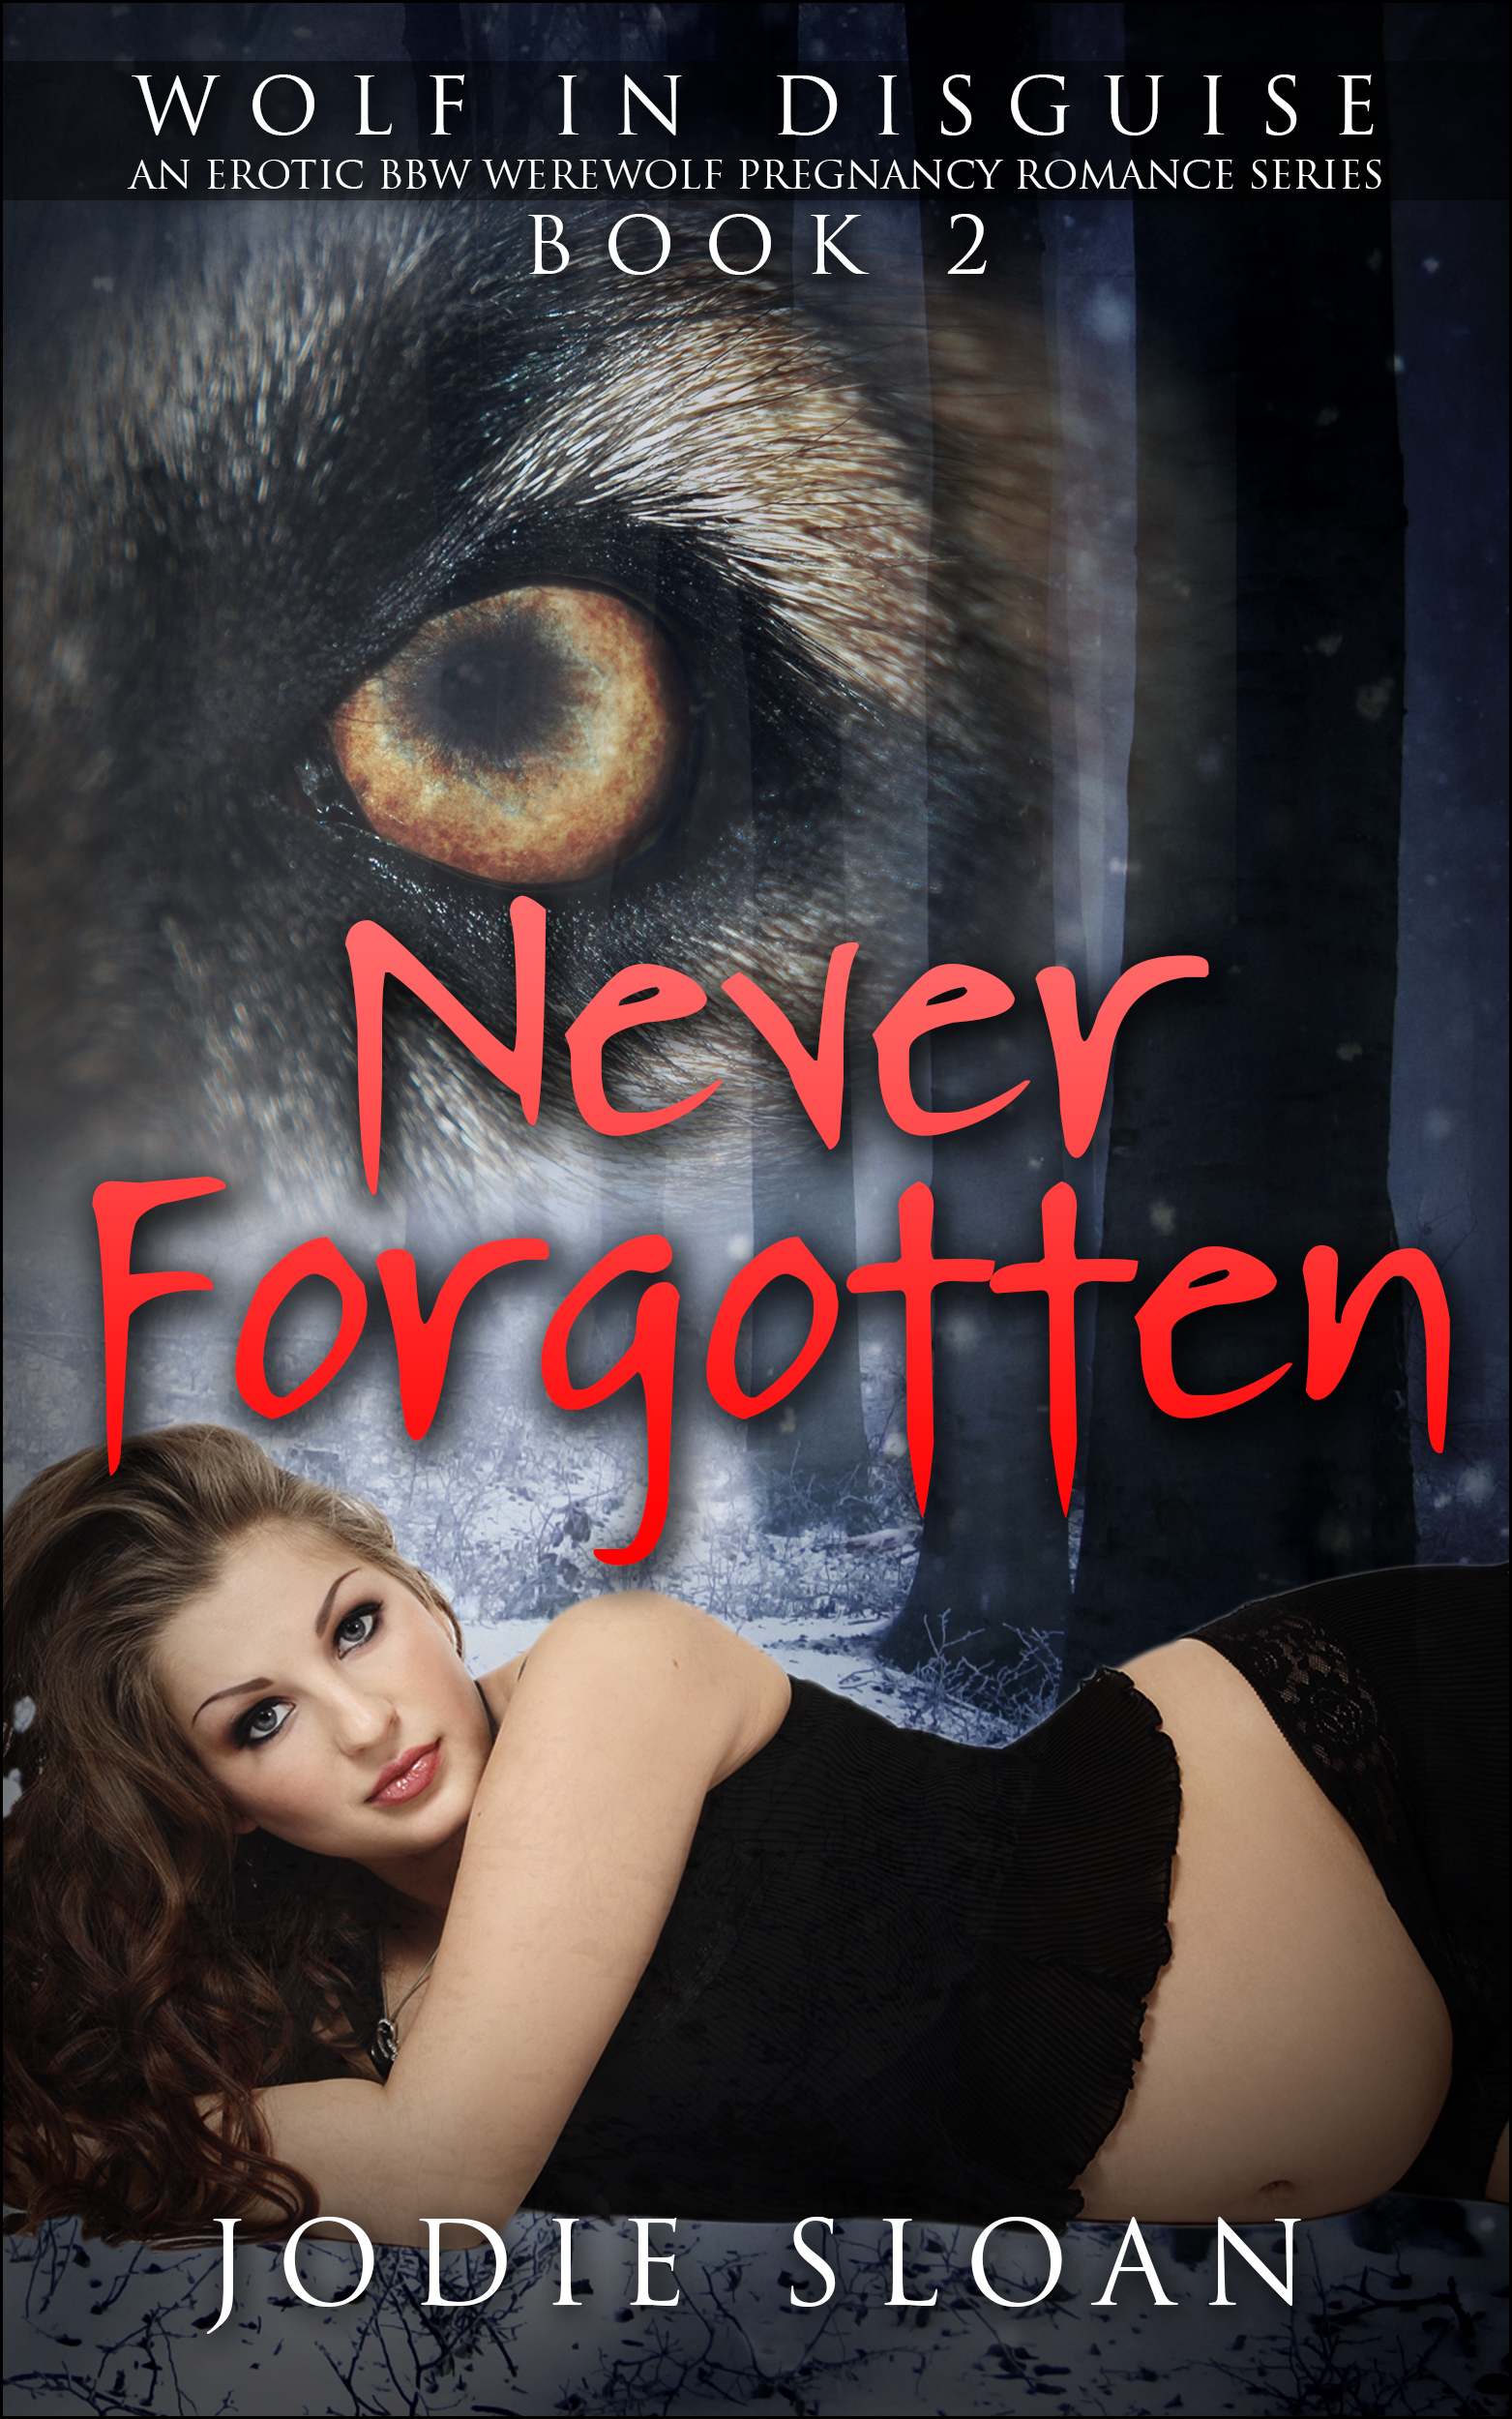 Wolf in disguise : never forgotten